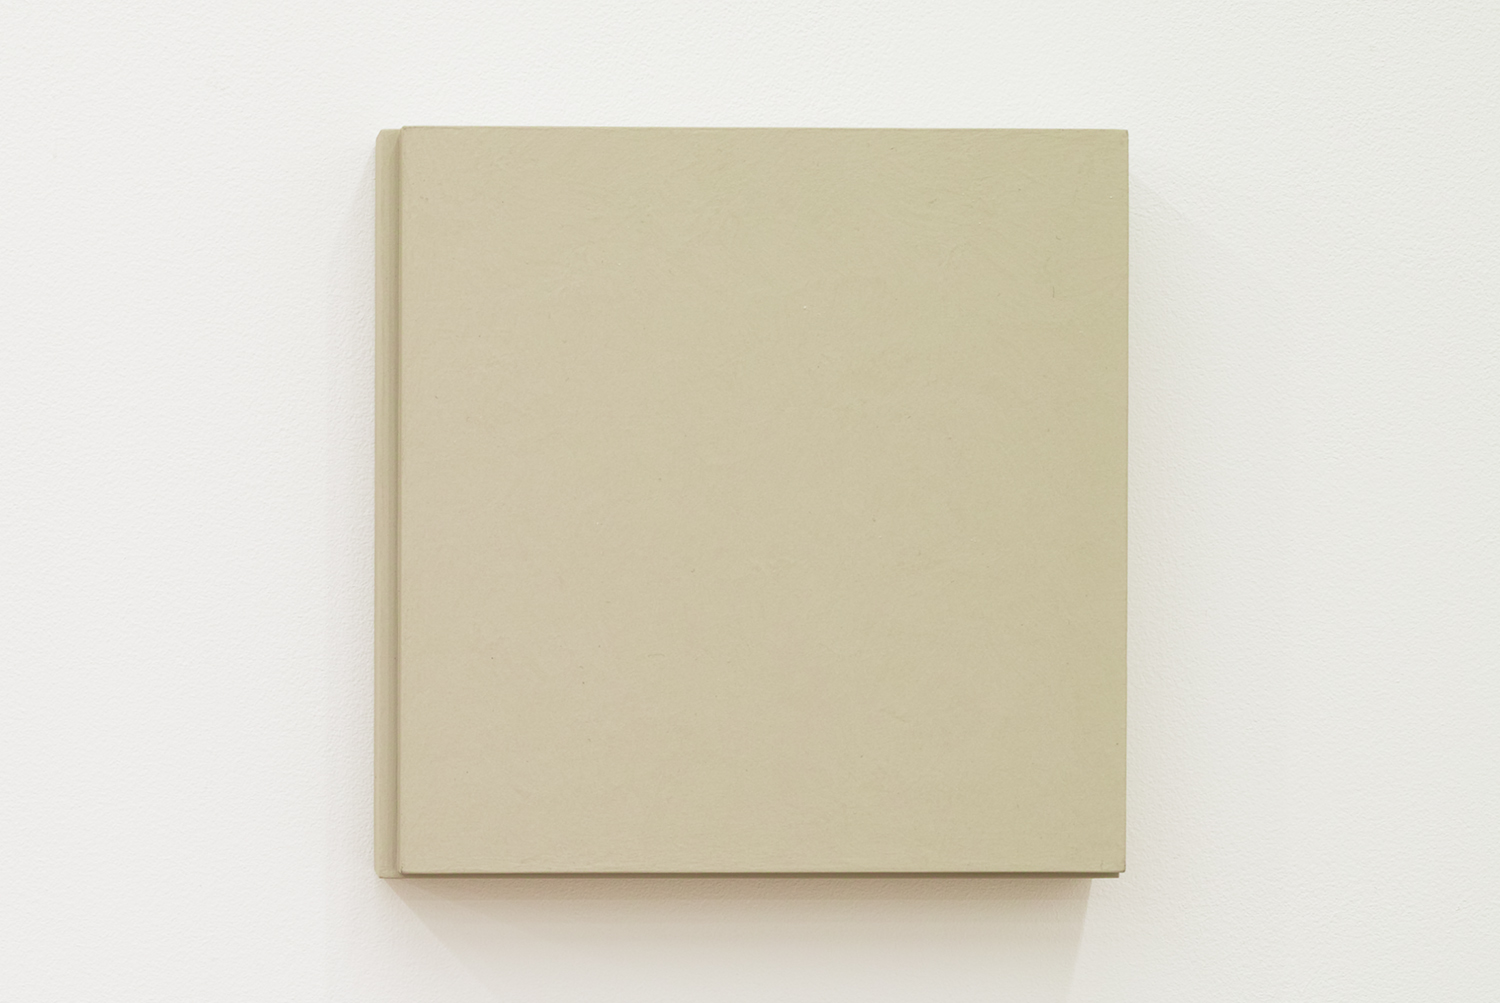 TS1012|Gesso on panel |20 x 20 cm|2012